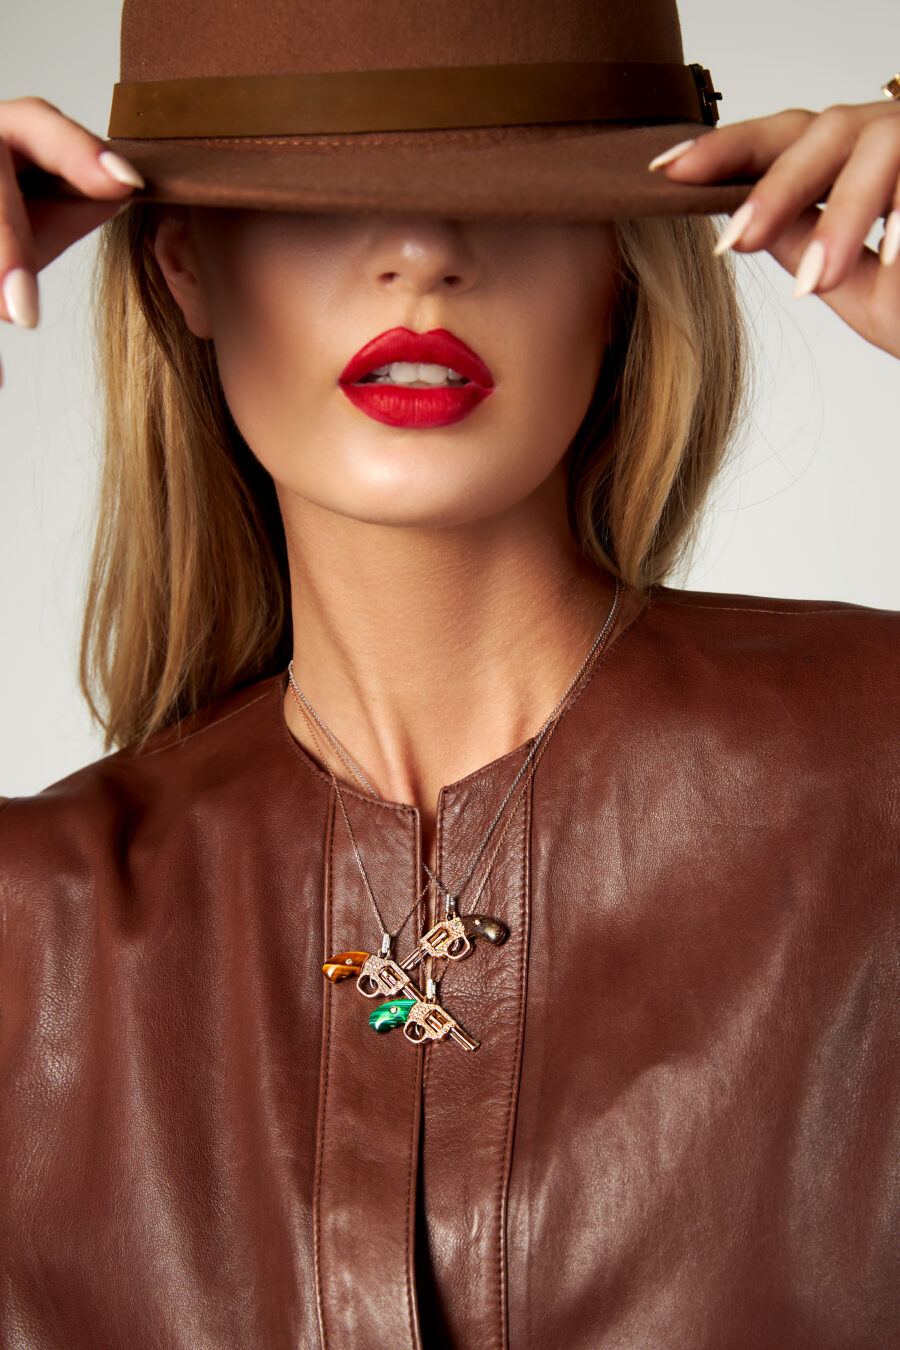 peacemaker gun revolver pendant necklace jewelry collection model photo 1